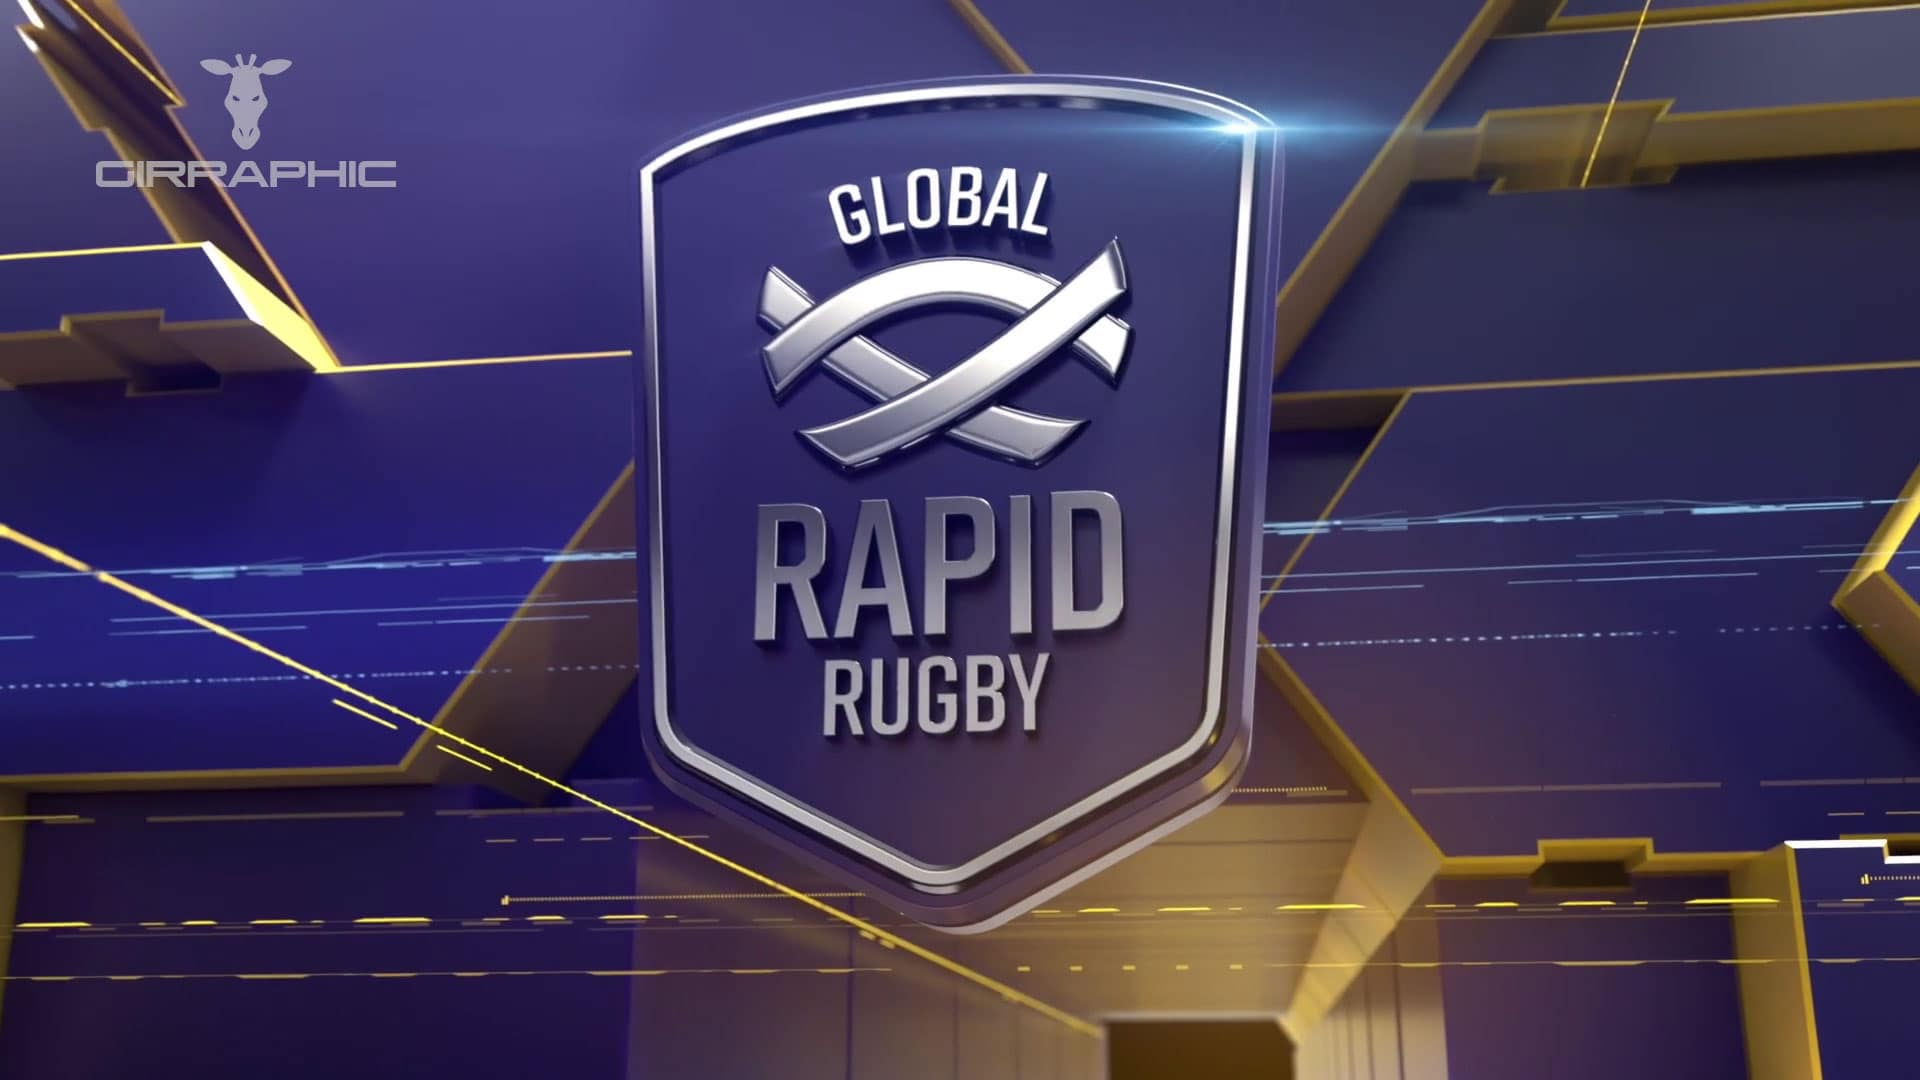 2019 Global Rapid Rugby Opener Still 06 Girraphic